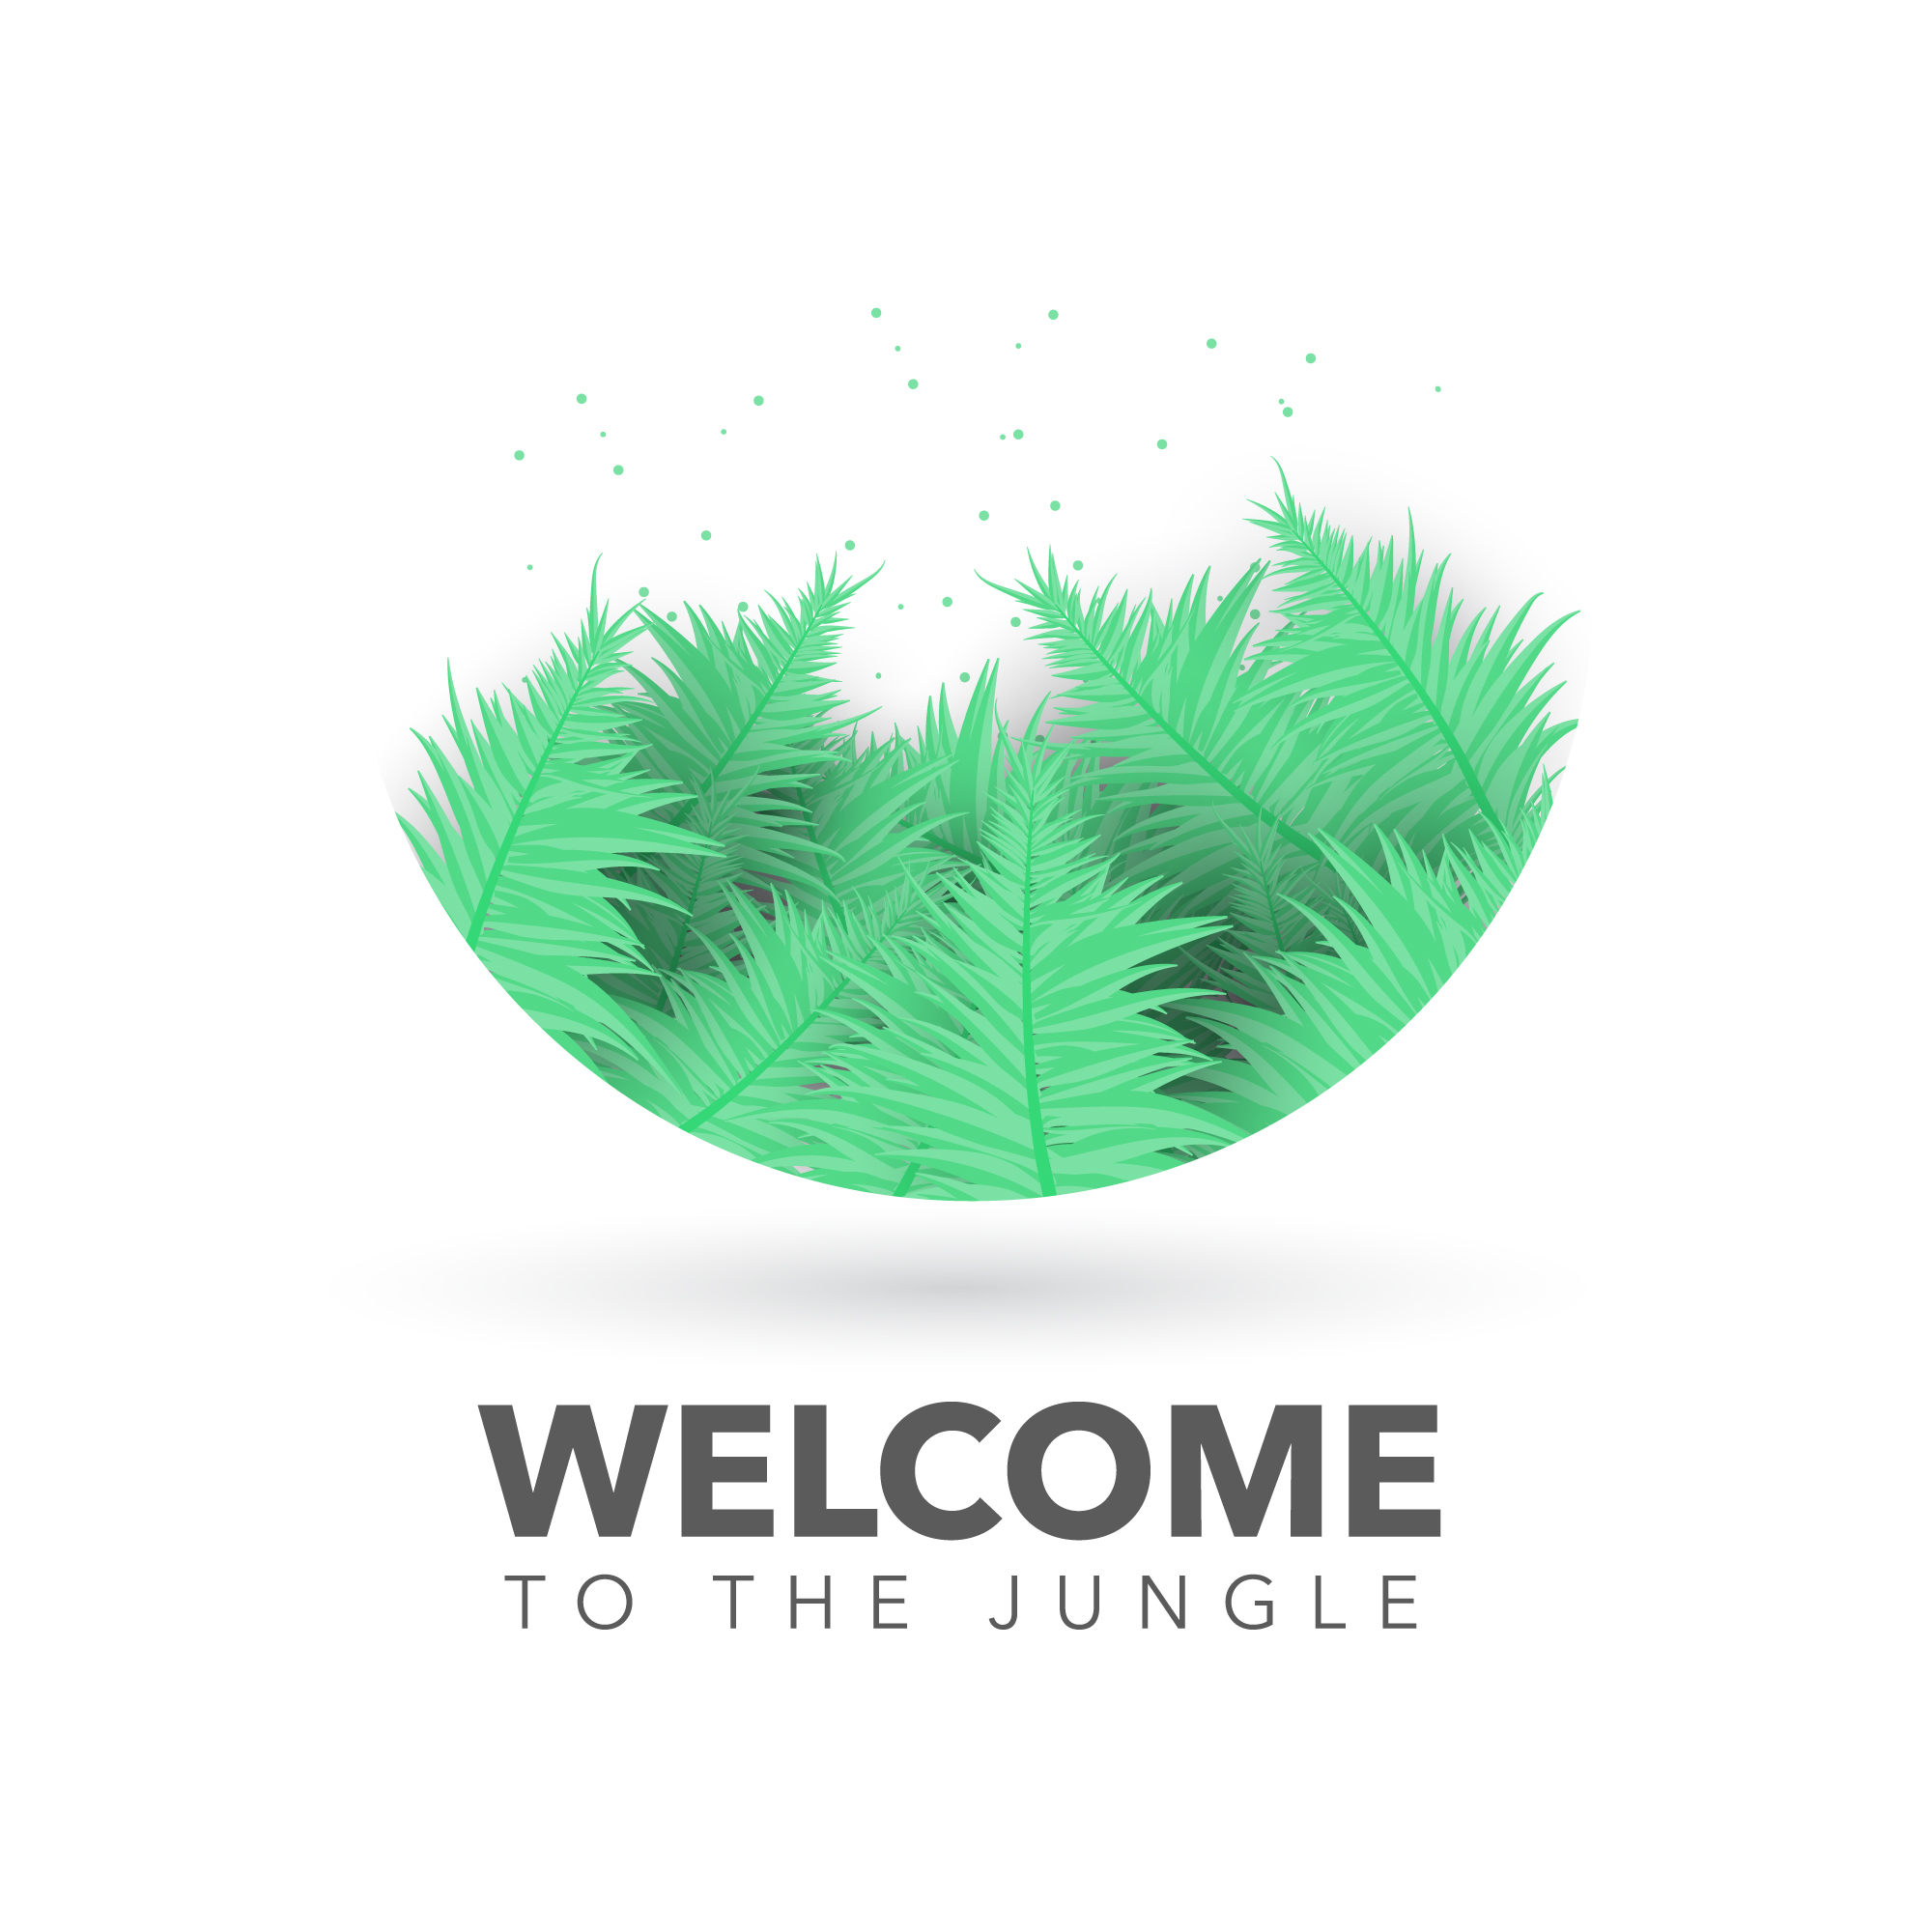 Welcome to the jungle background